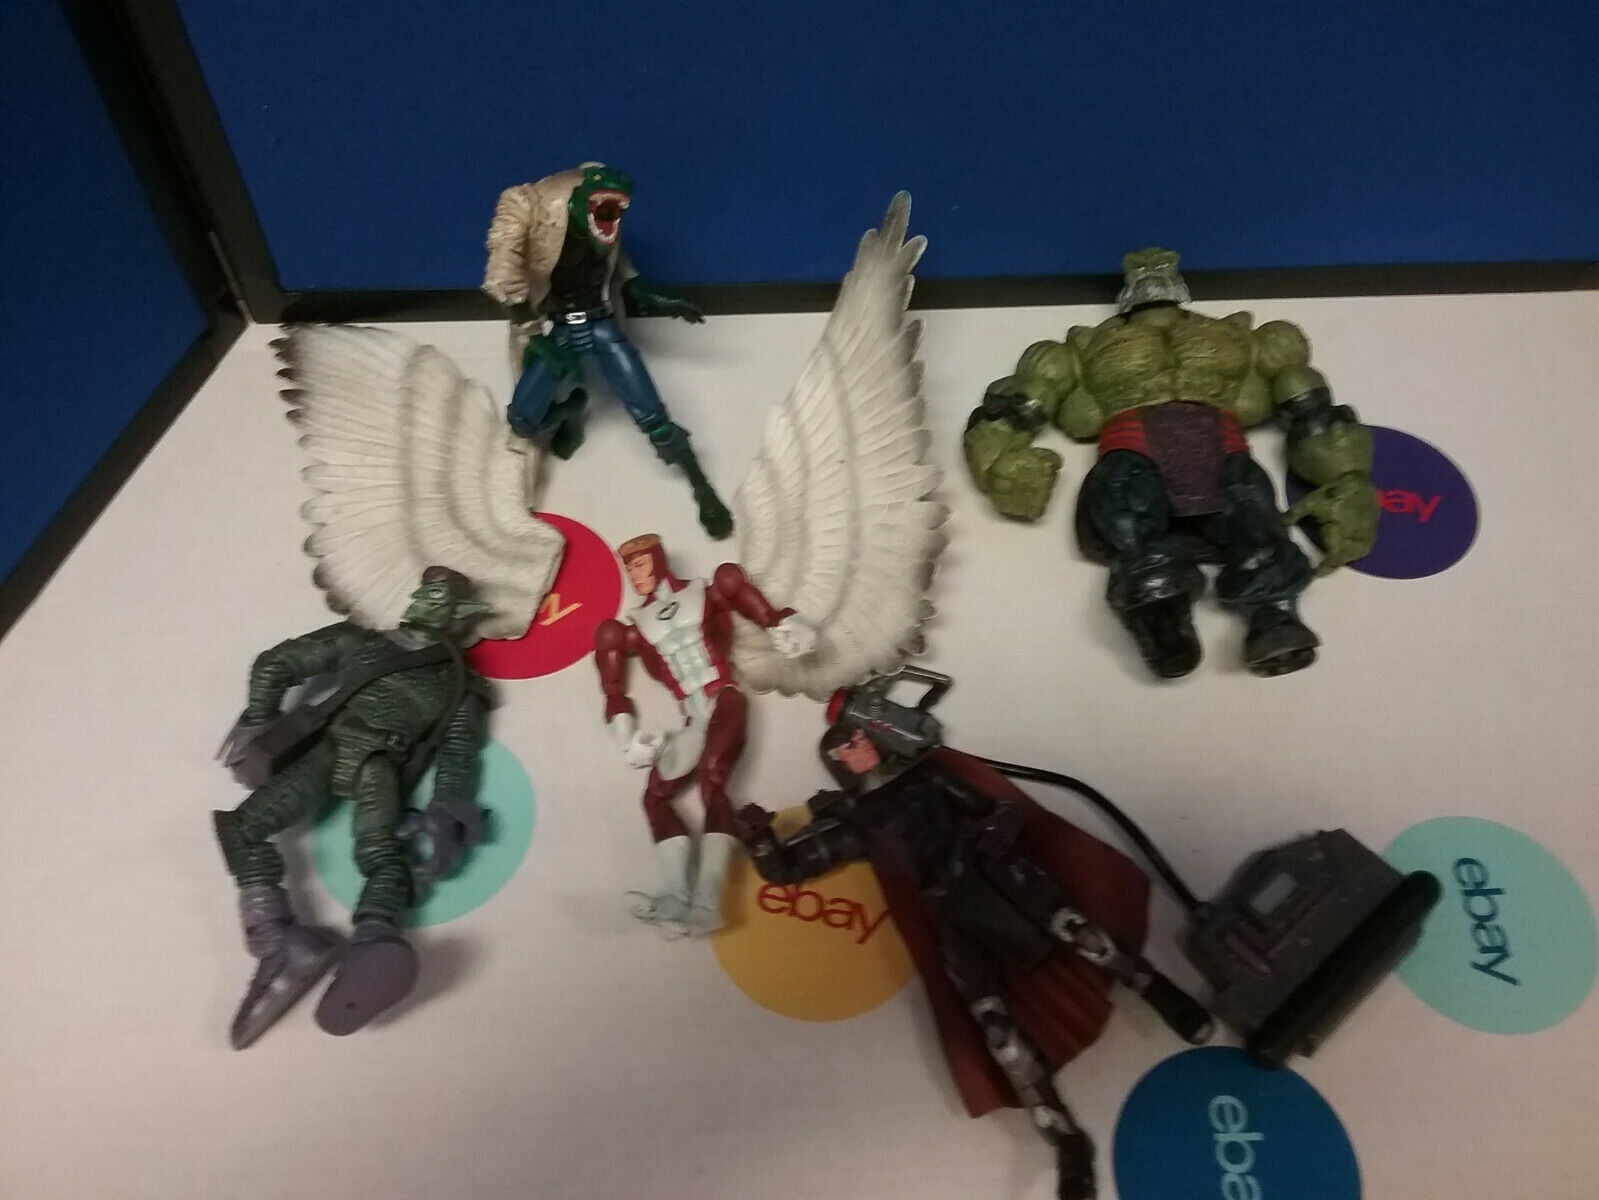 Marvel Legends Lot of 5 Lizard Goblin Angel Maestro Magneto Magneto Magneto toybiz Loose 7be6d7